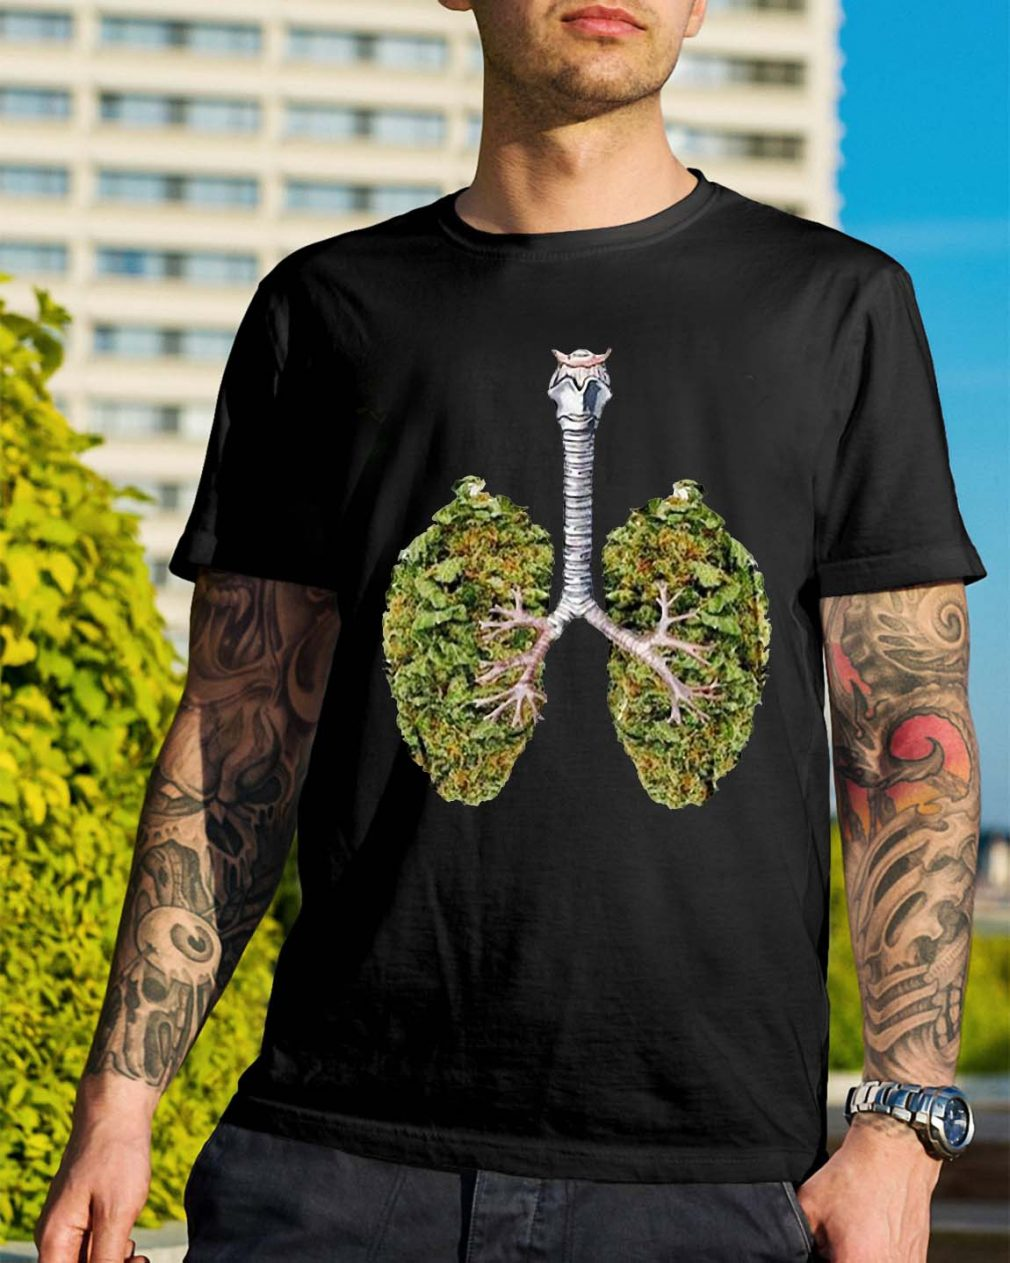 Weed lungs shirt